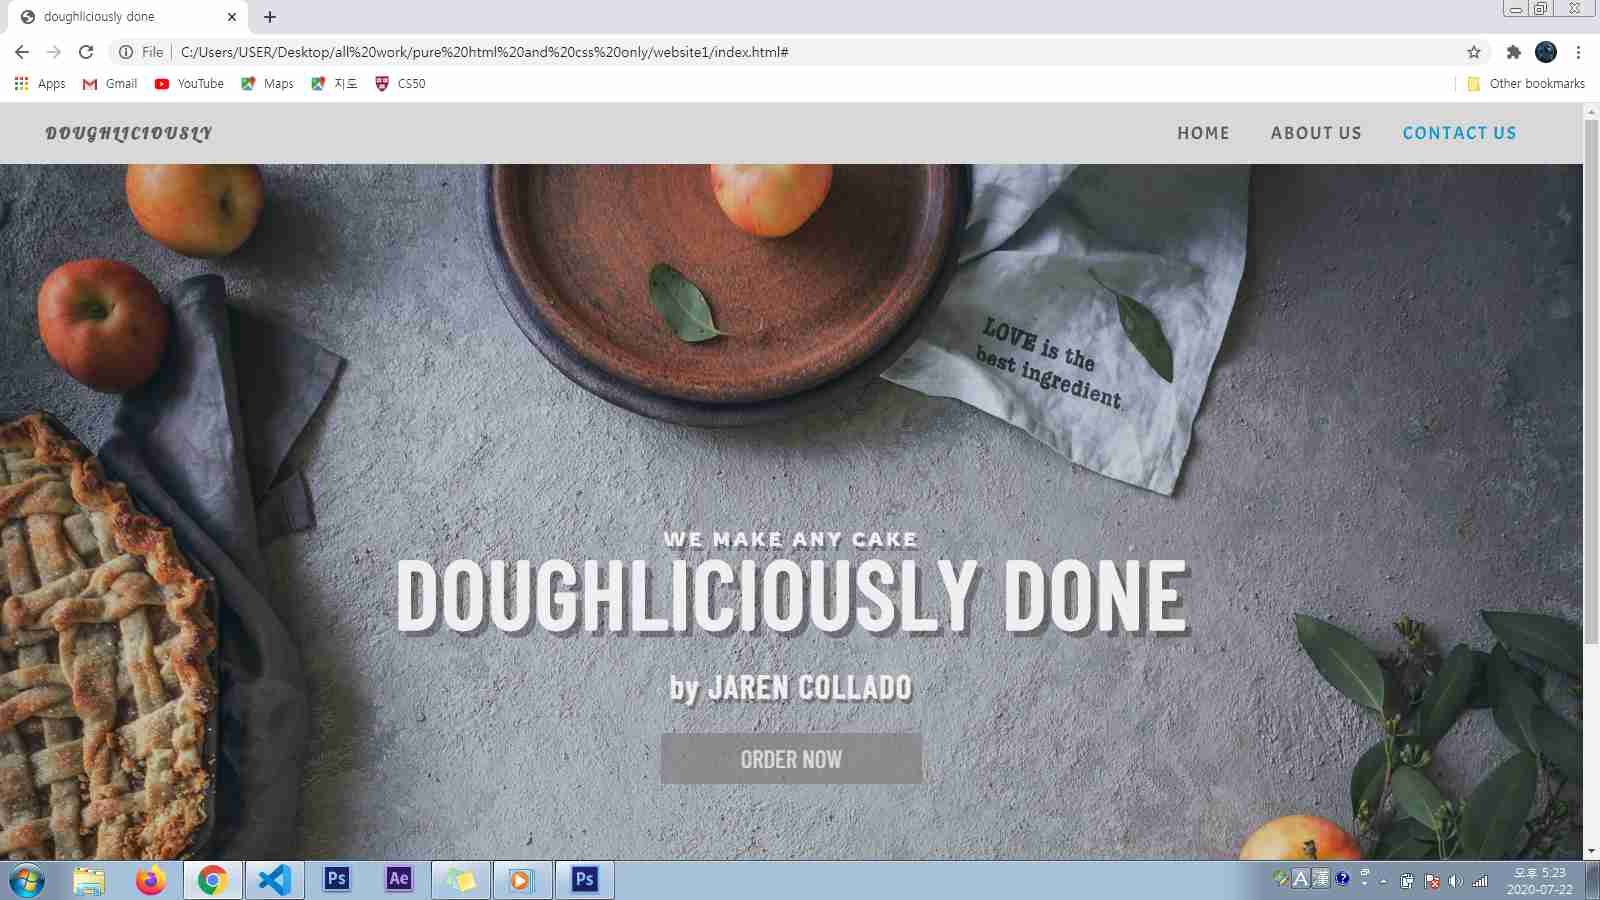 baking business page